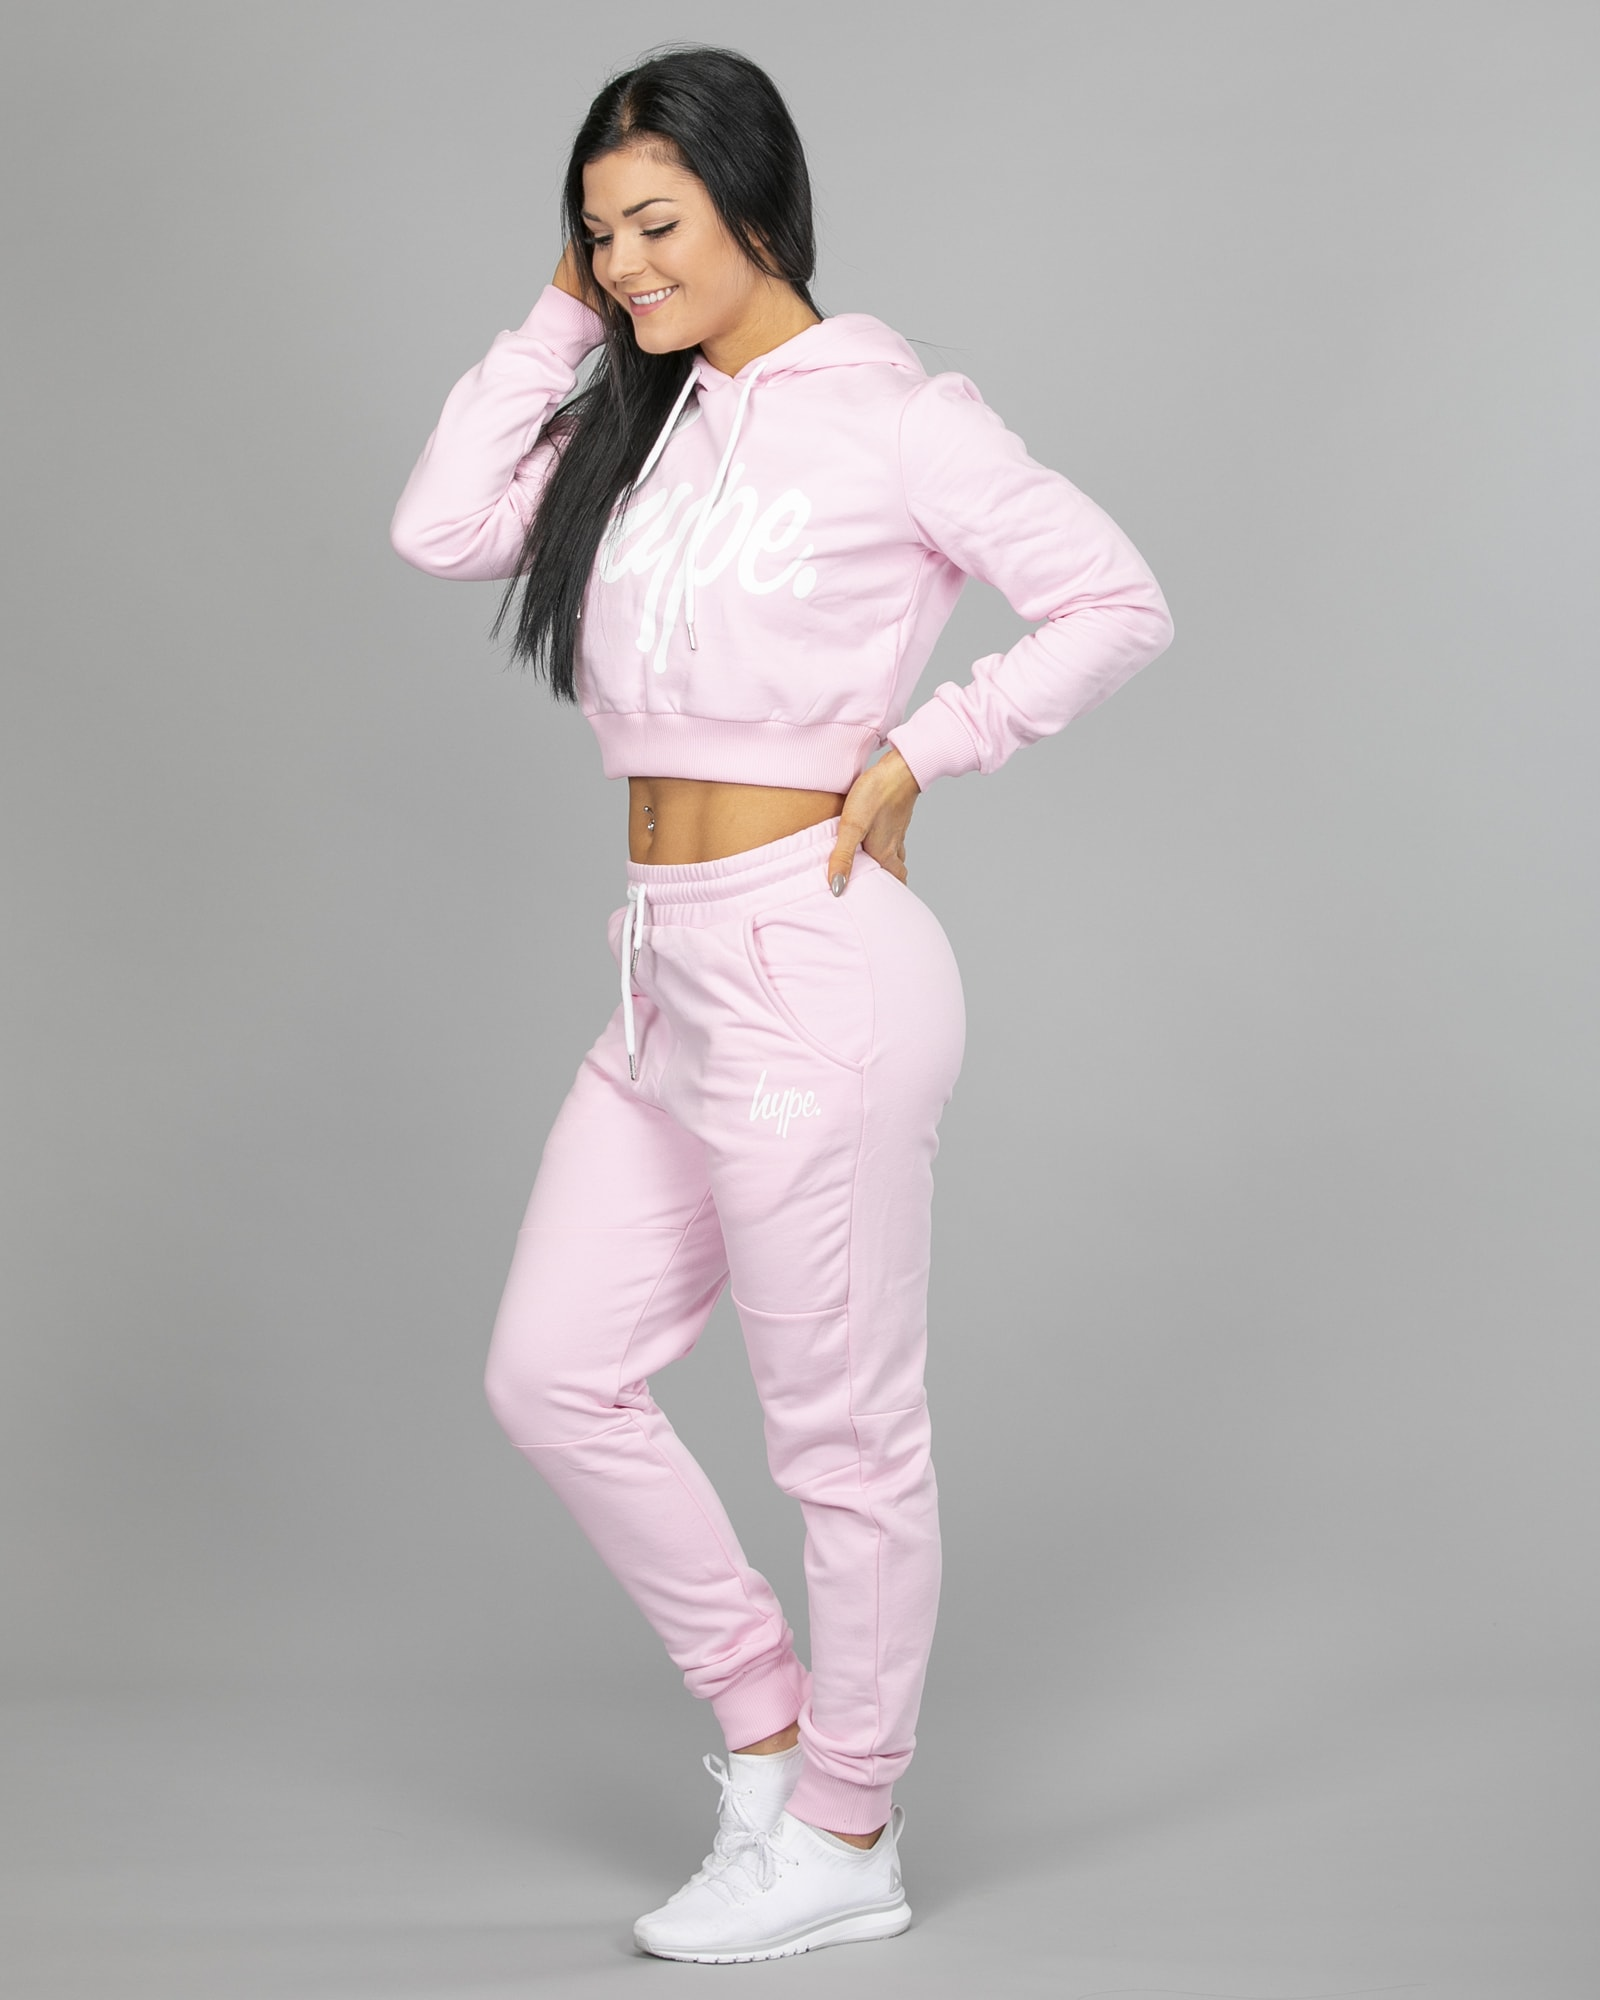 Hype Script Crop Hoodie womch006 and Joggers womj006 Pink c